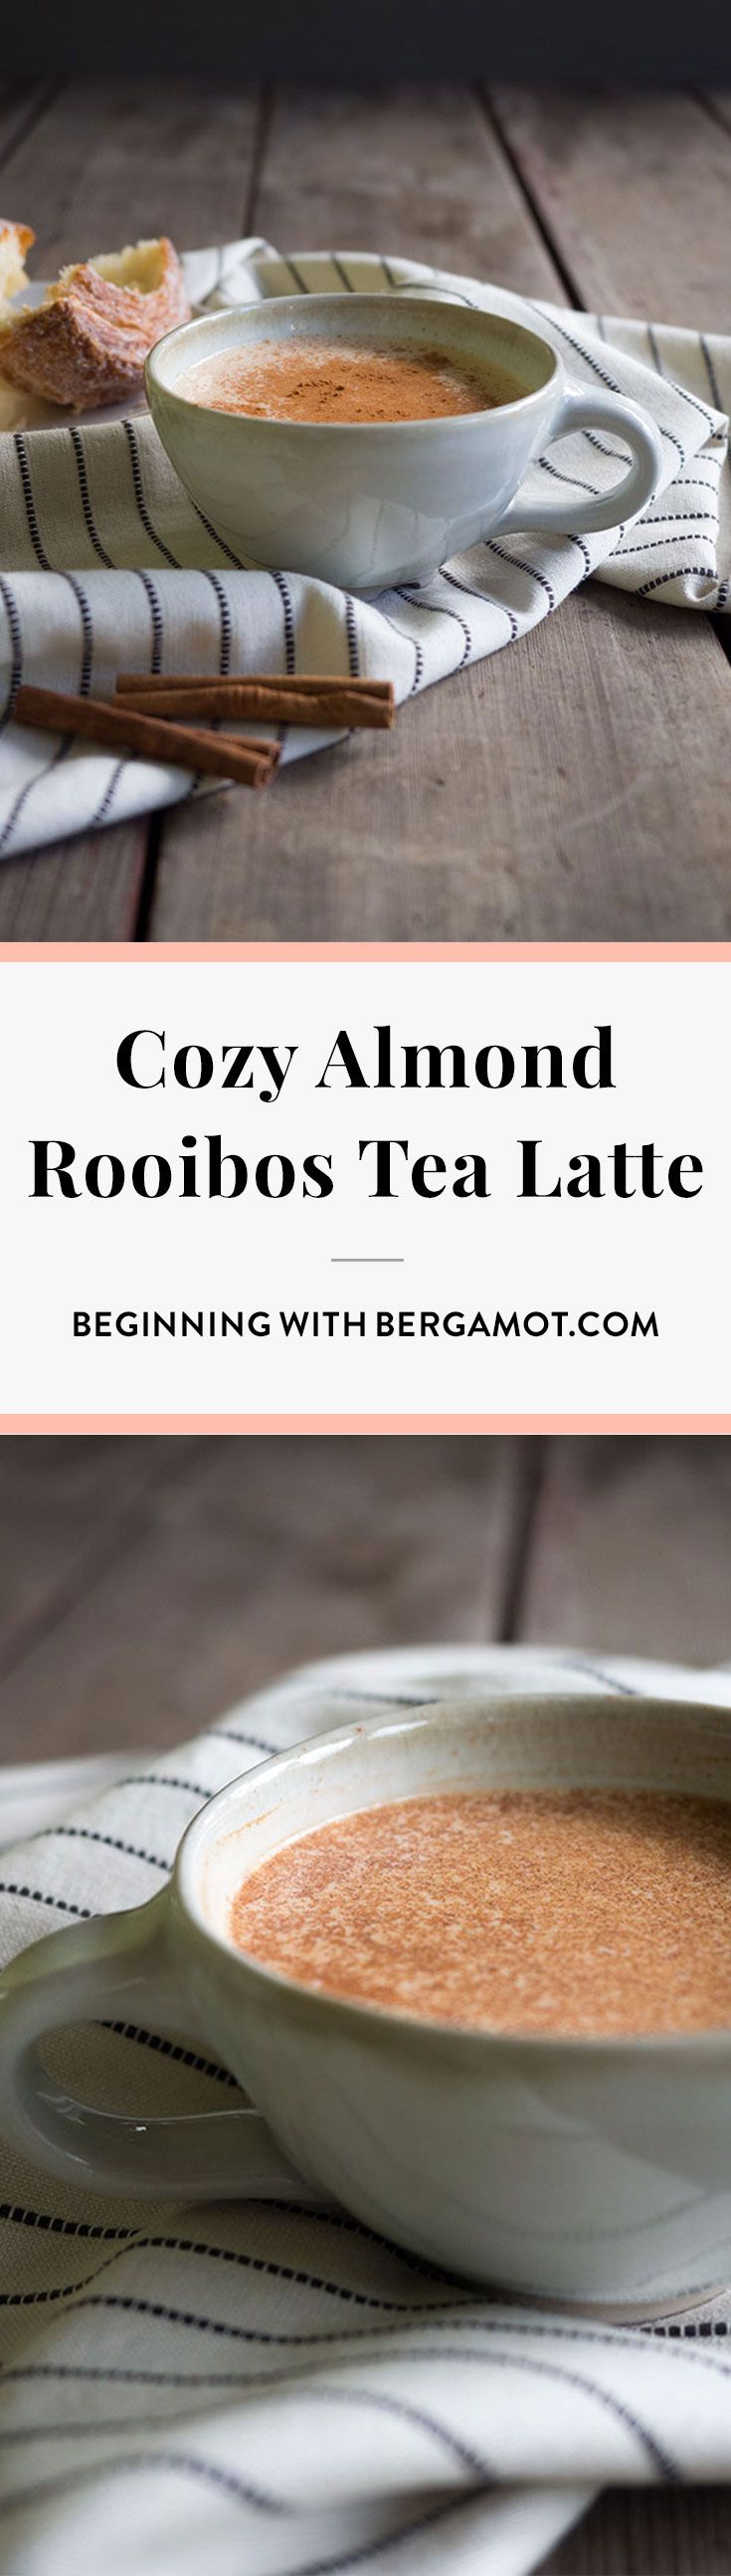 Cozy, magical, the perfect drink for fall. If you've never tried a Rooibos Tea Latte you're missing out. This Almond Rooibos Latte is similar to a Chai Latte but with coconut, almond and apple flavors.  //  Beginning with Bergamot